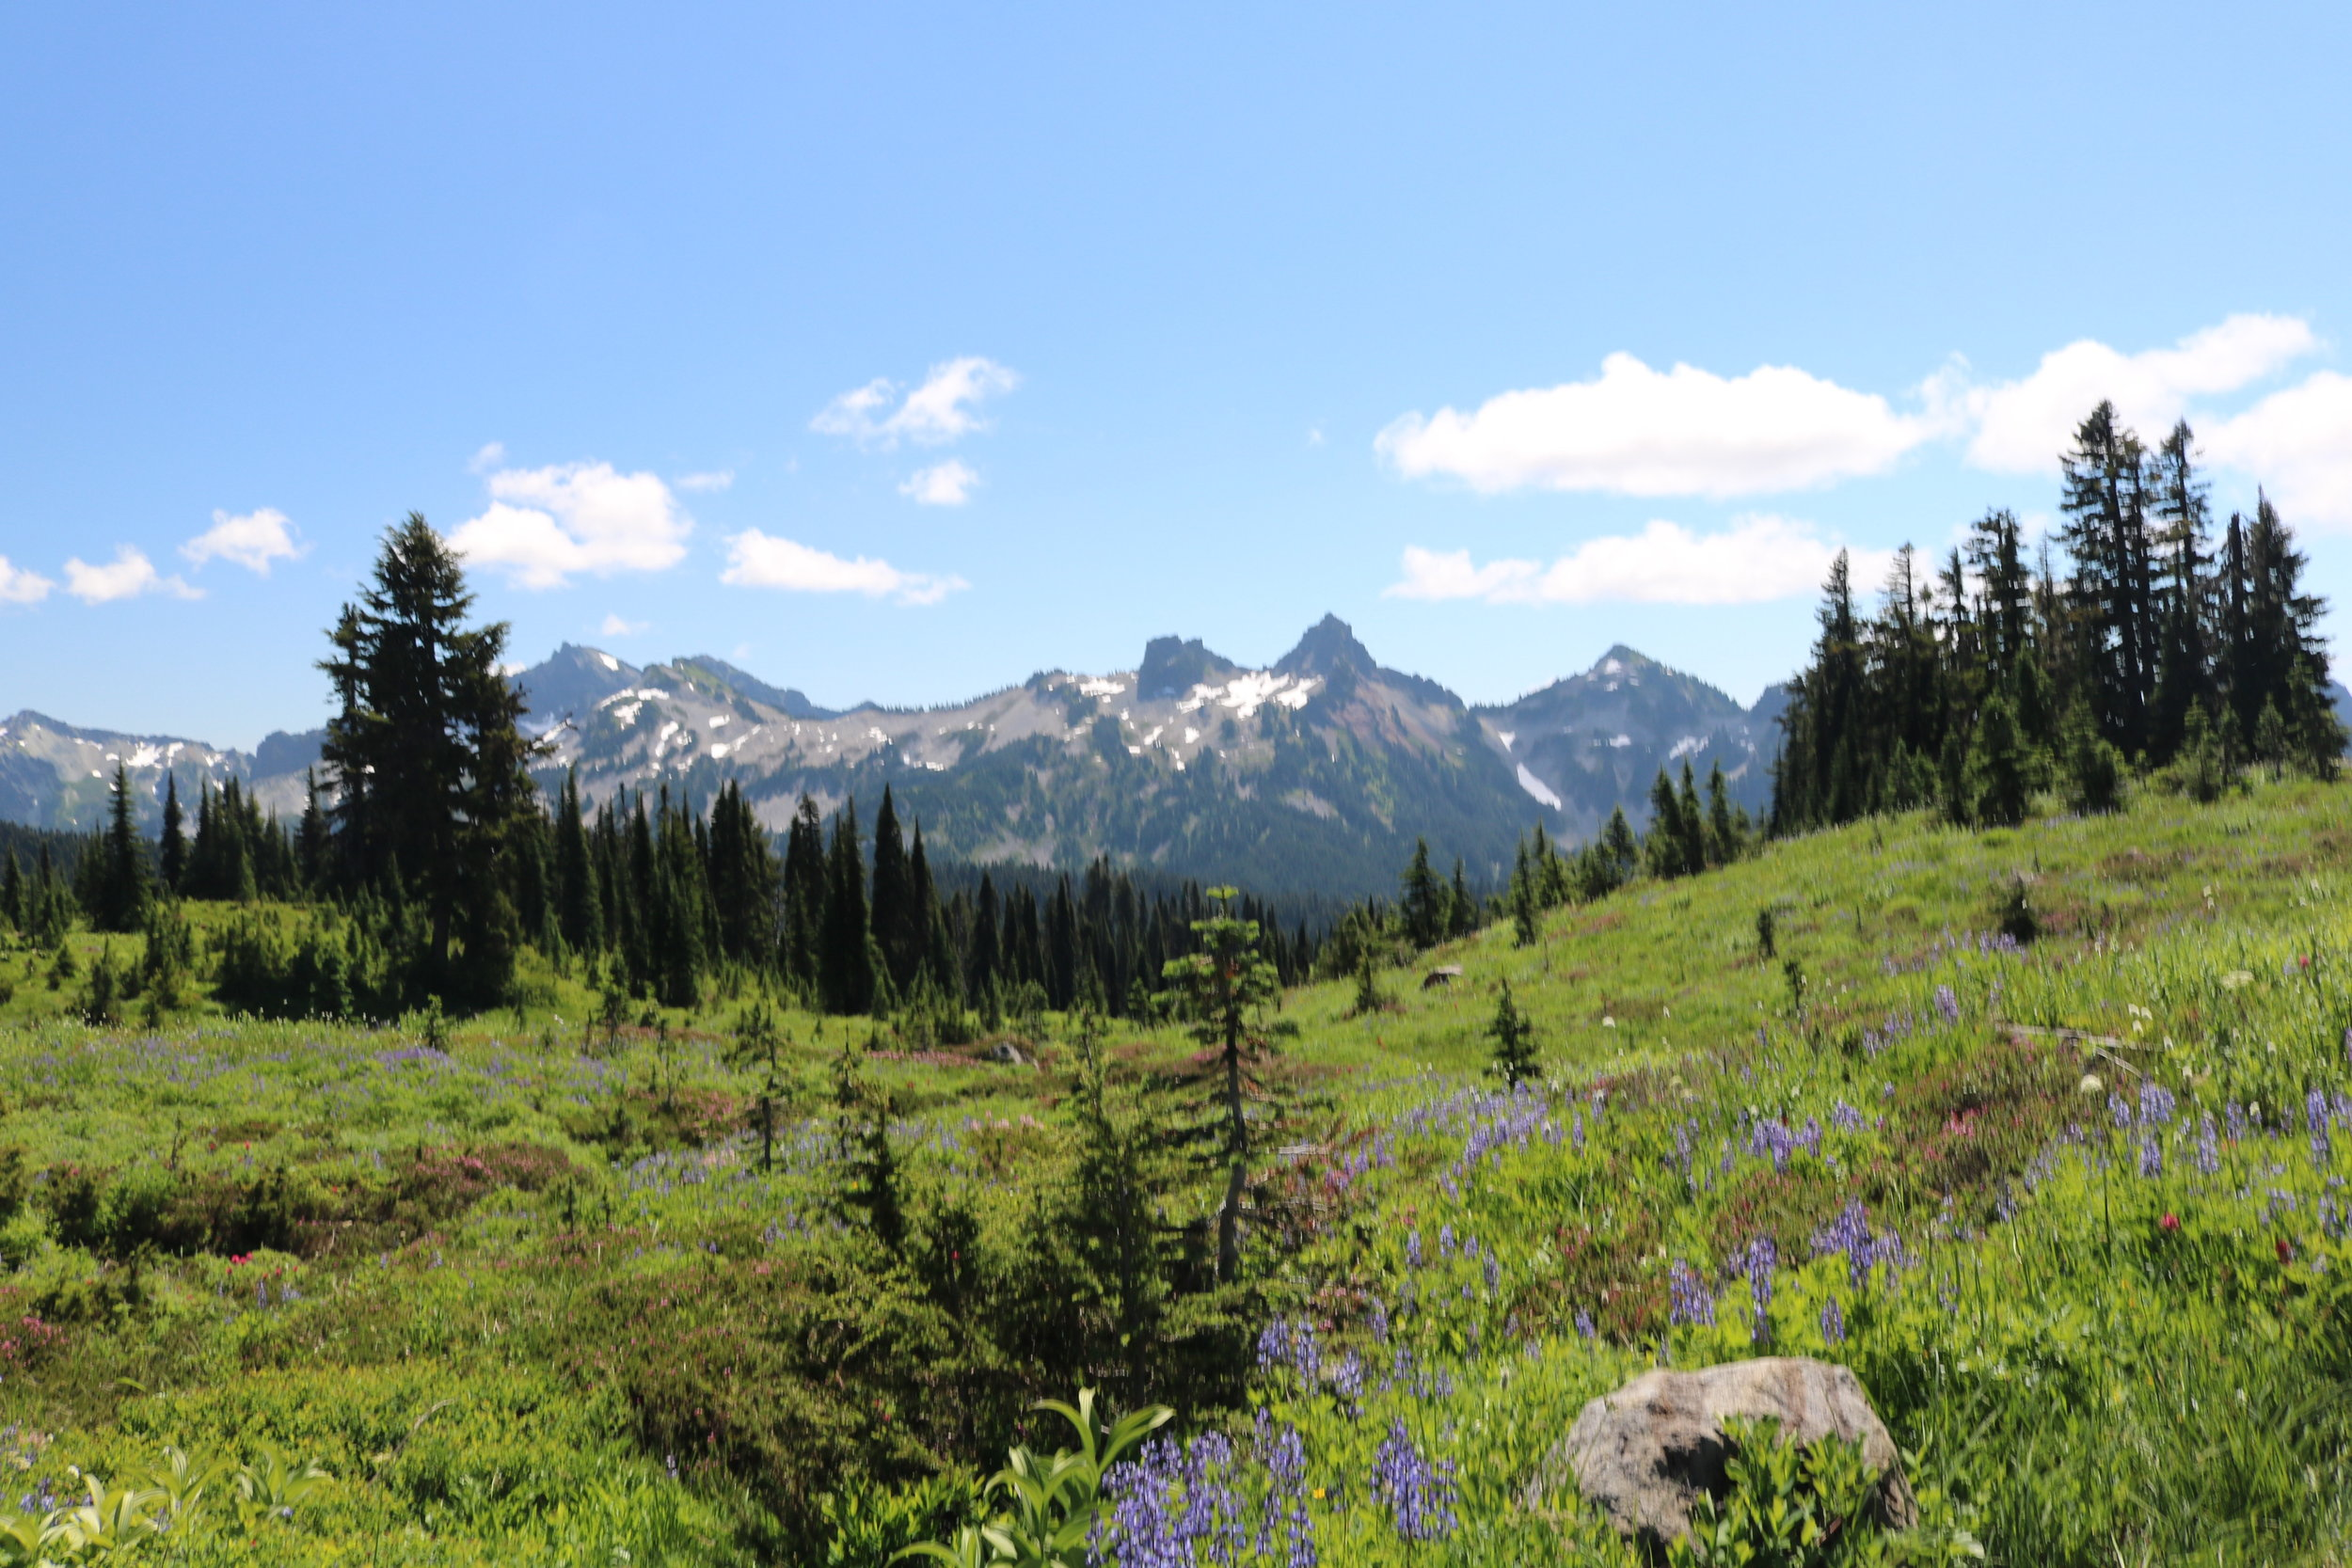 Mount Rainier National Park has great alpine views, and great alpine meadows.